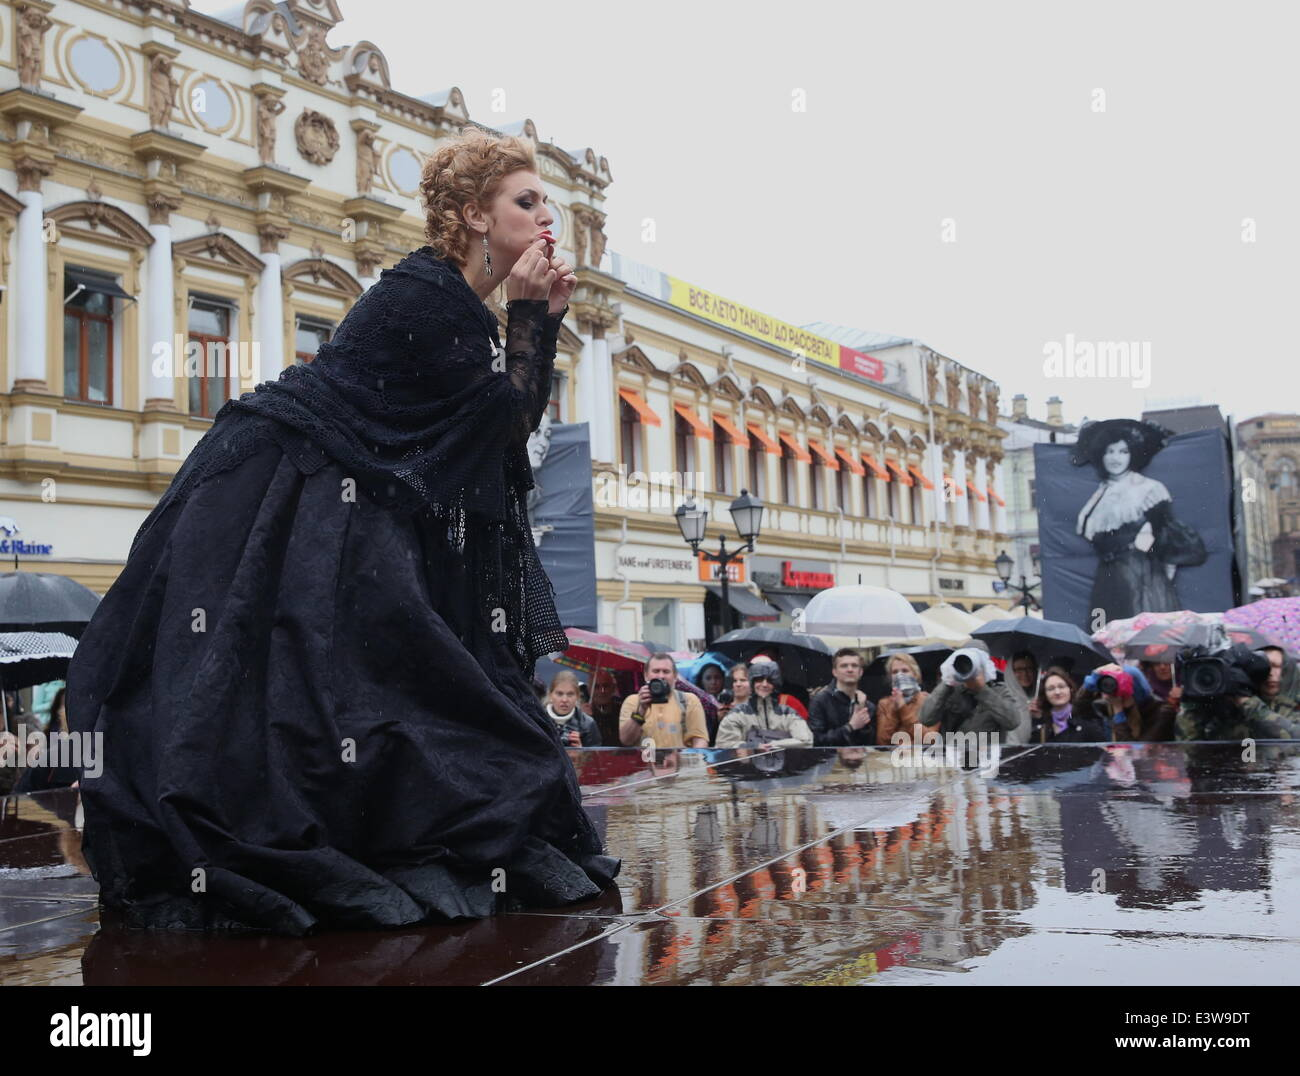 Moscow, Russia. 28th June, 2014. Actress Yevgenia Lotonina in a scene from the Brothers Karamazov novel by Fyodor - Stock Image